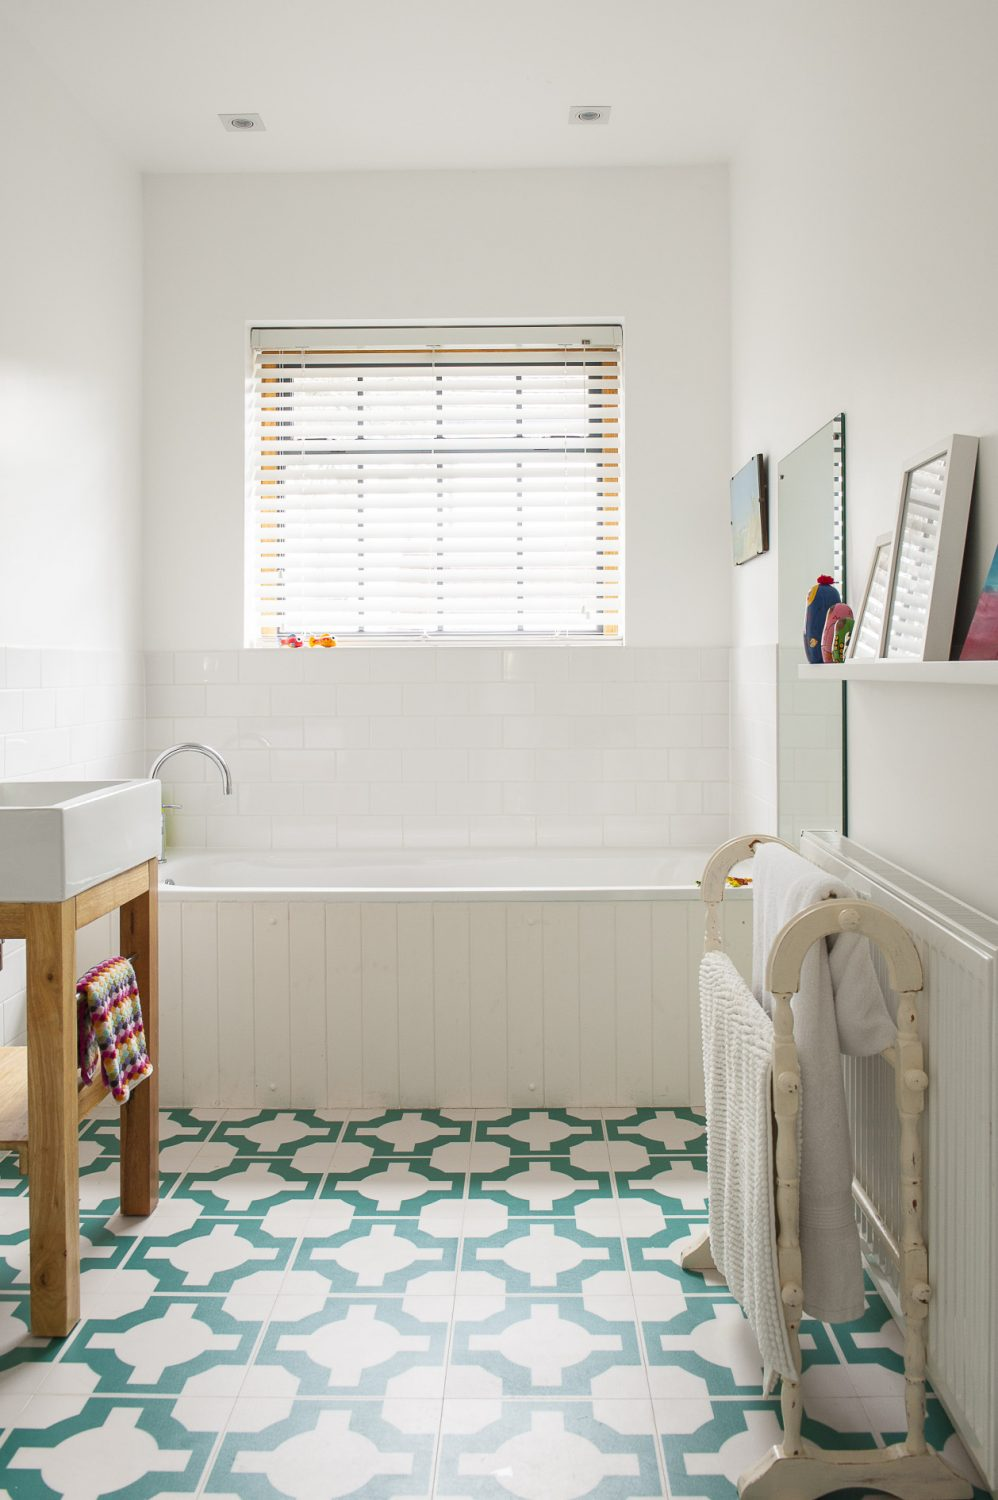 The simple bathroom manages to be both stylish and functional